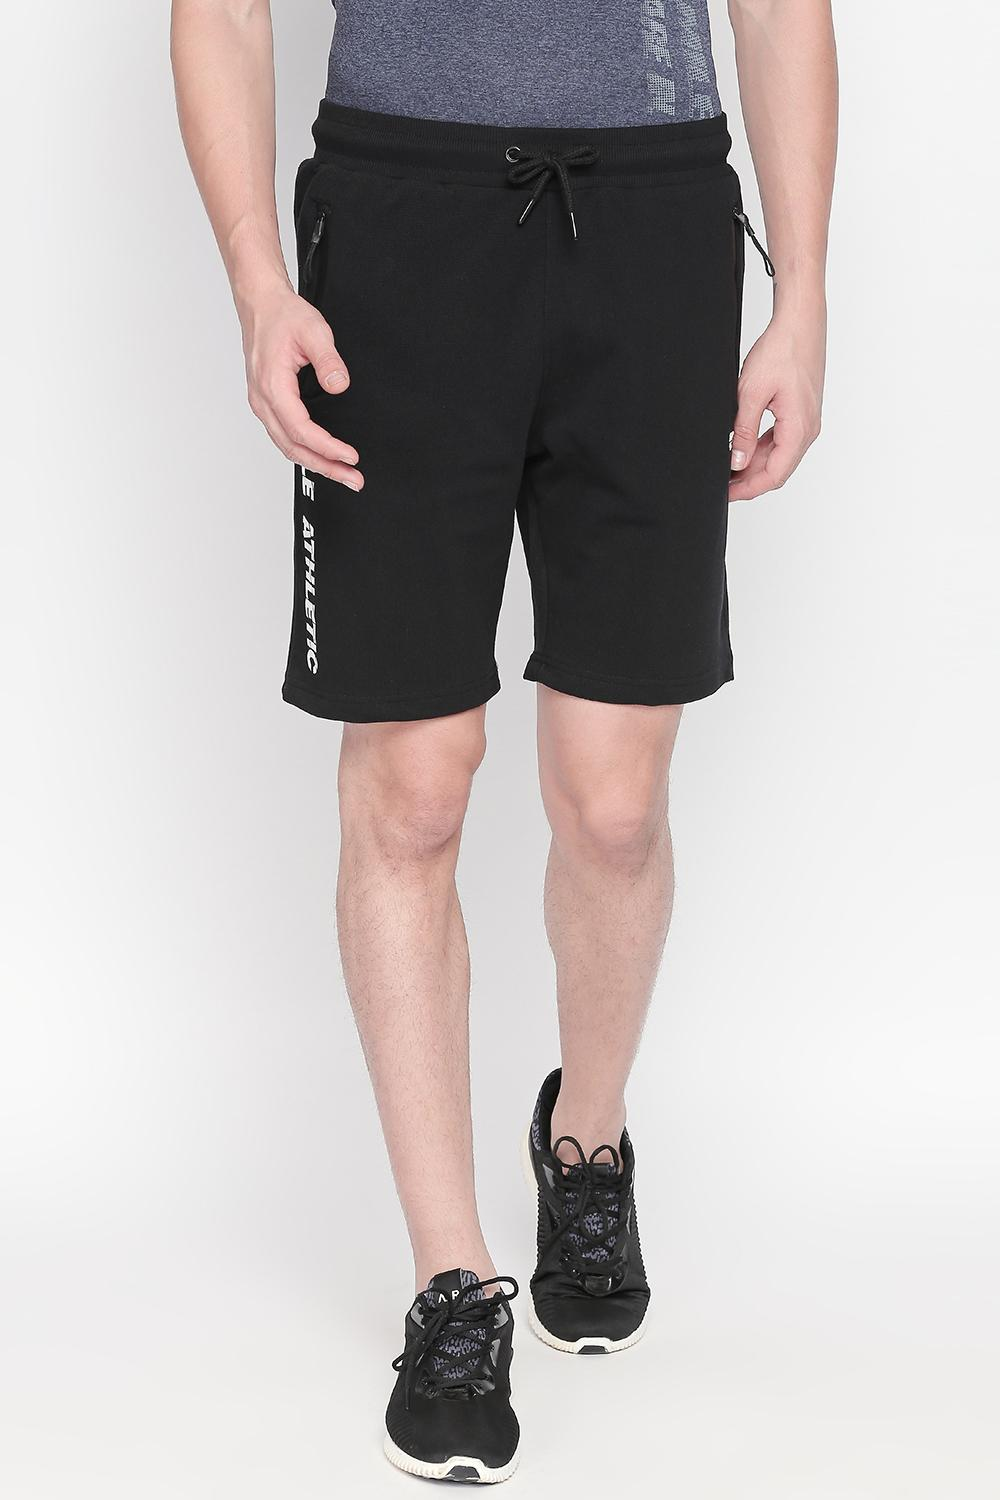 9d10f8afb3 Buy Men Shorts and 3/4ths Online in India - Best Shorts and 3/4ths ...